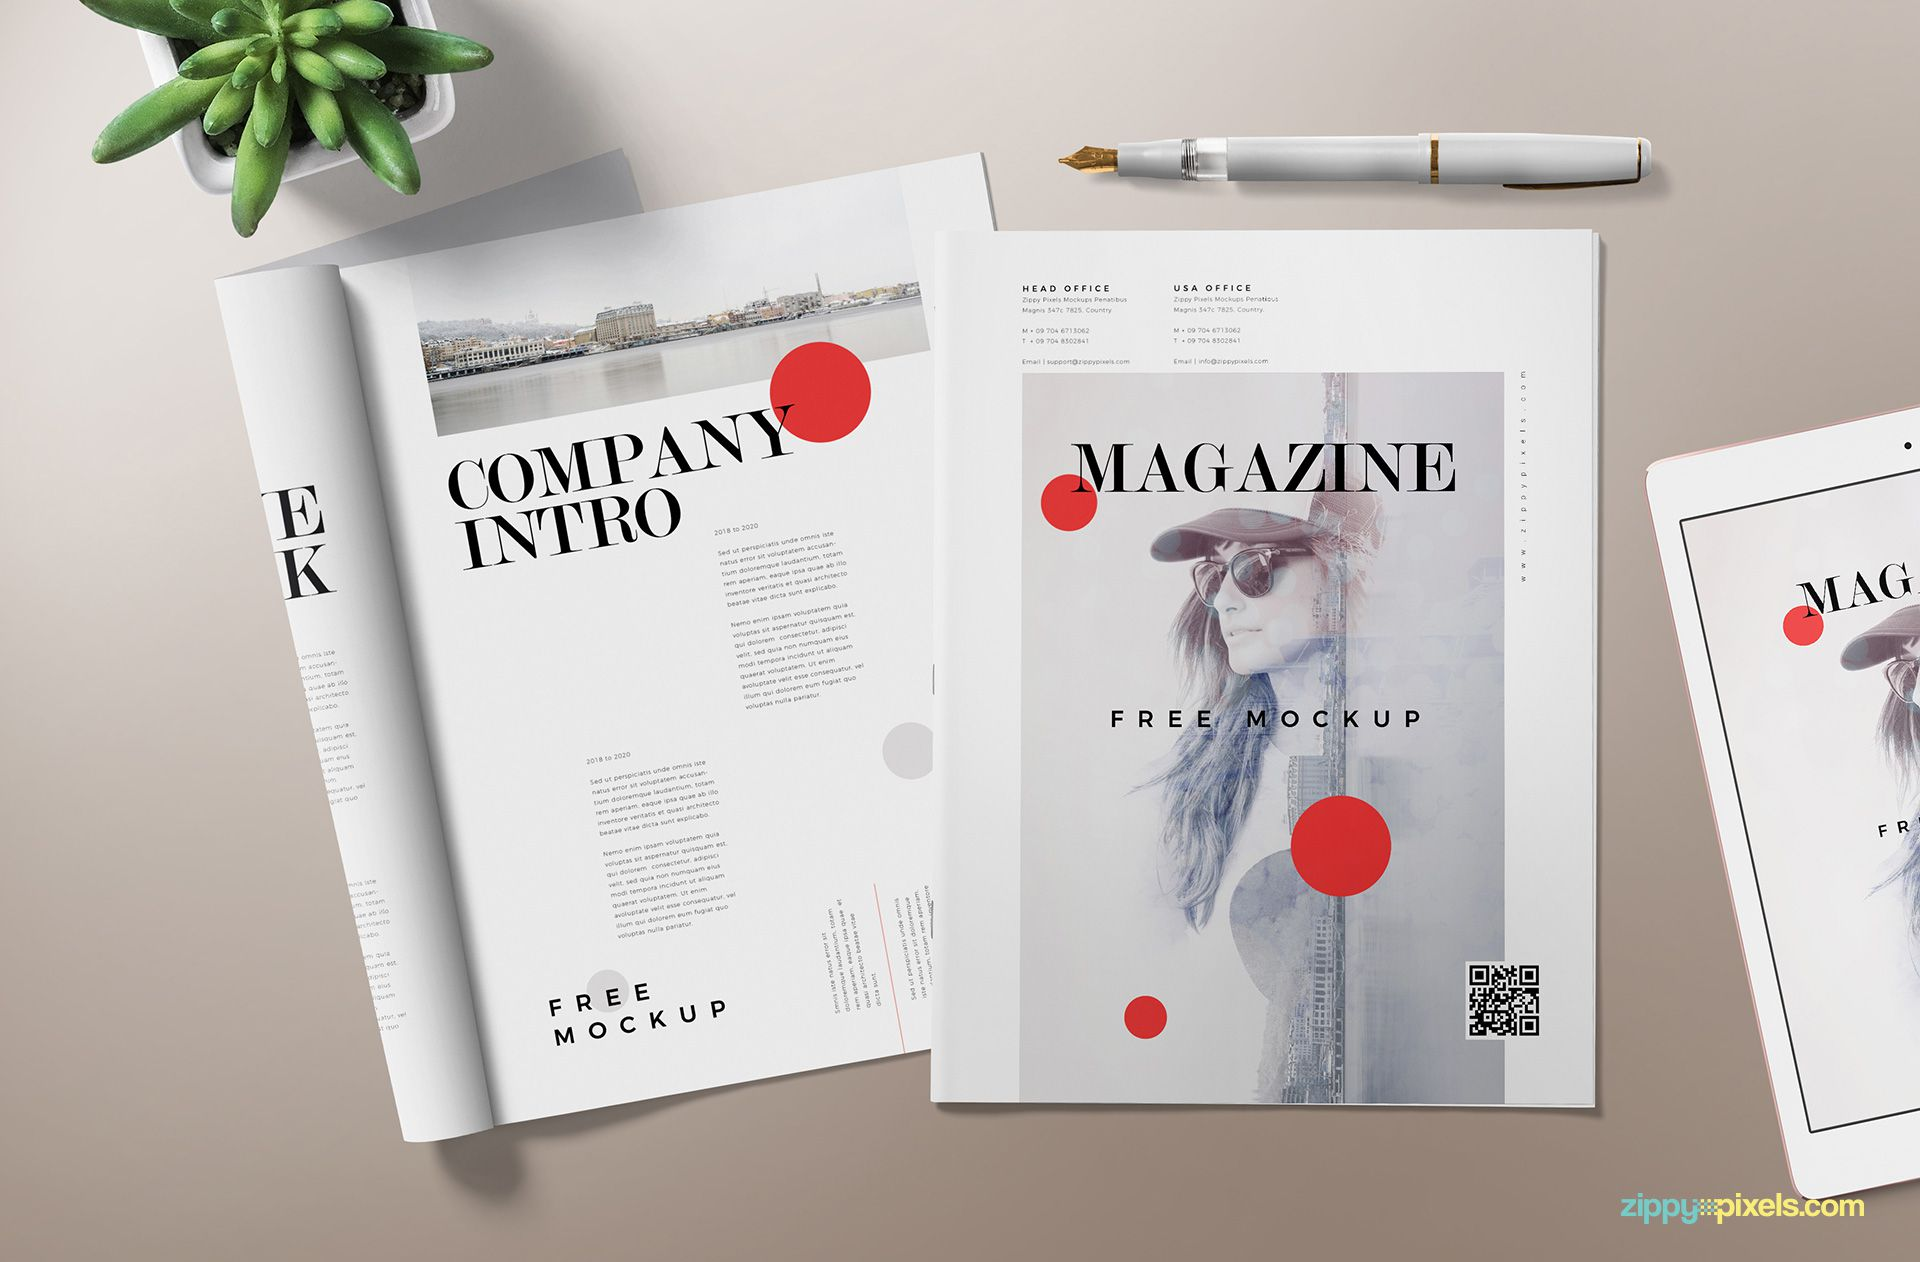 Fully customizable magazine mockup scene.